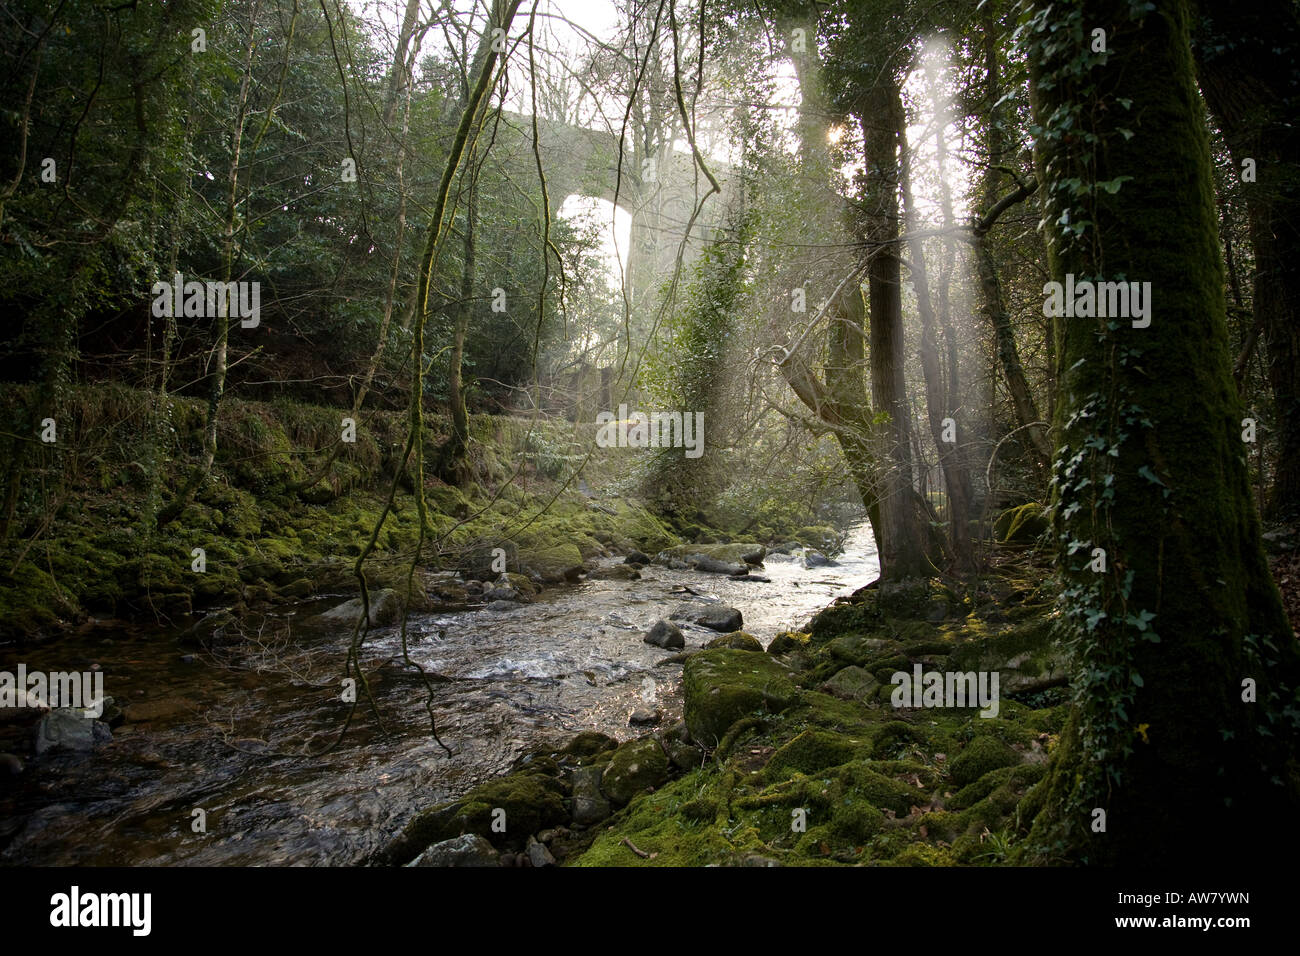 The river Erme at Ivybridge with the railway viaduct in the distance. - Stock Image